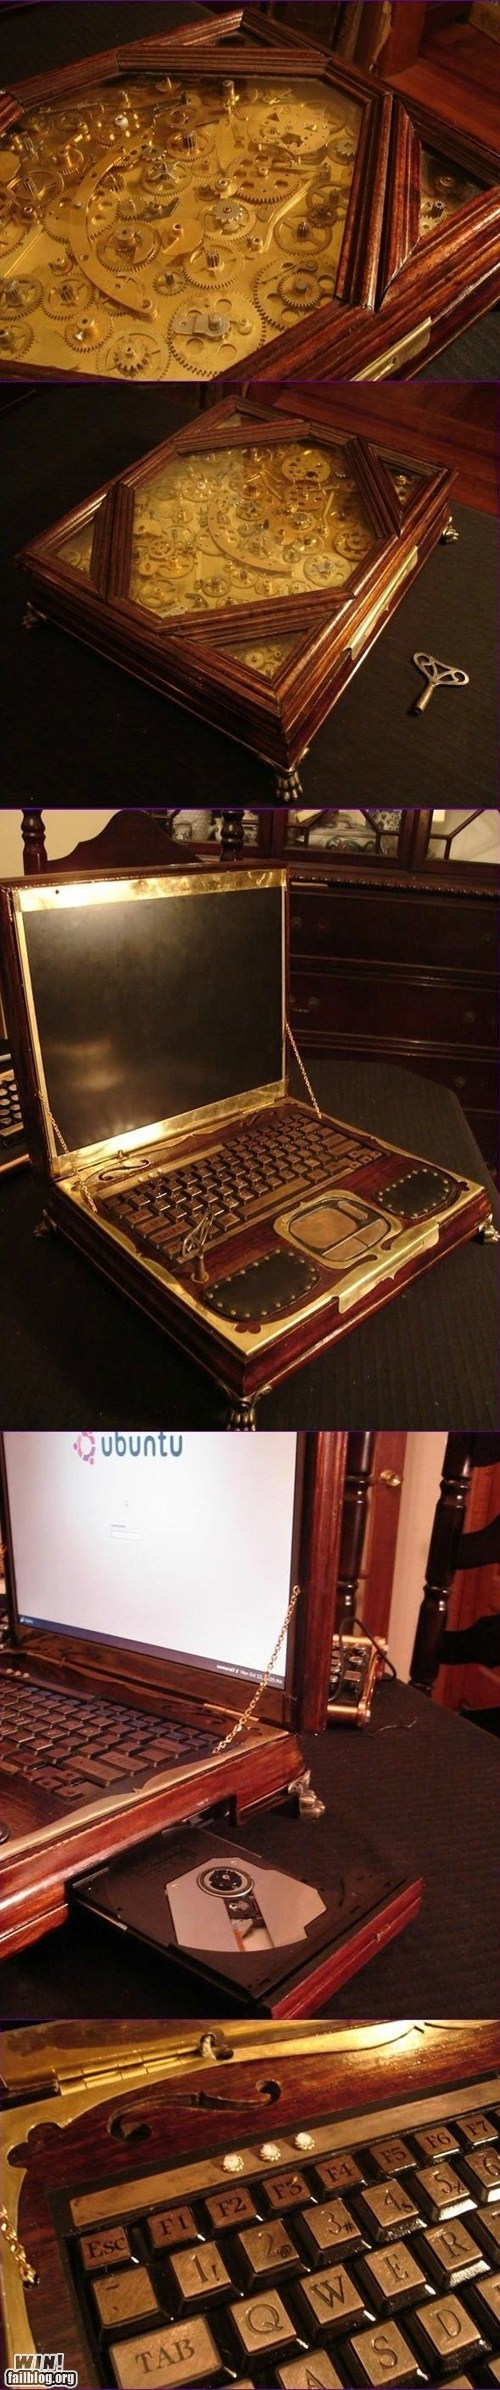 classy computer laptop modification - 6370177536